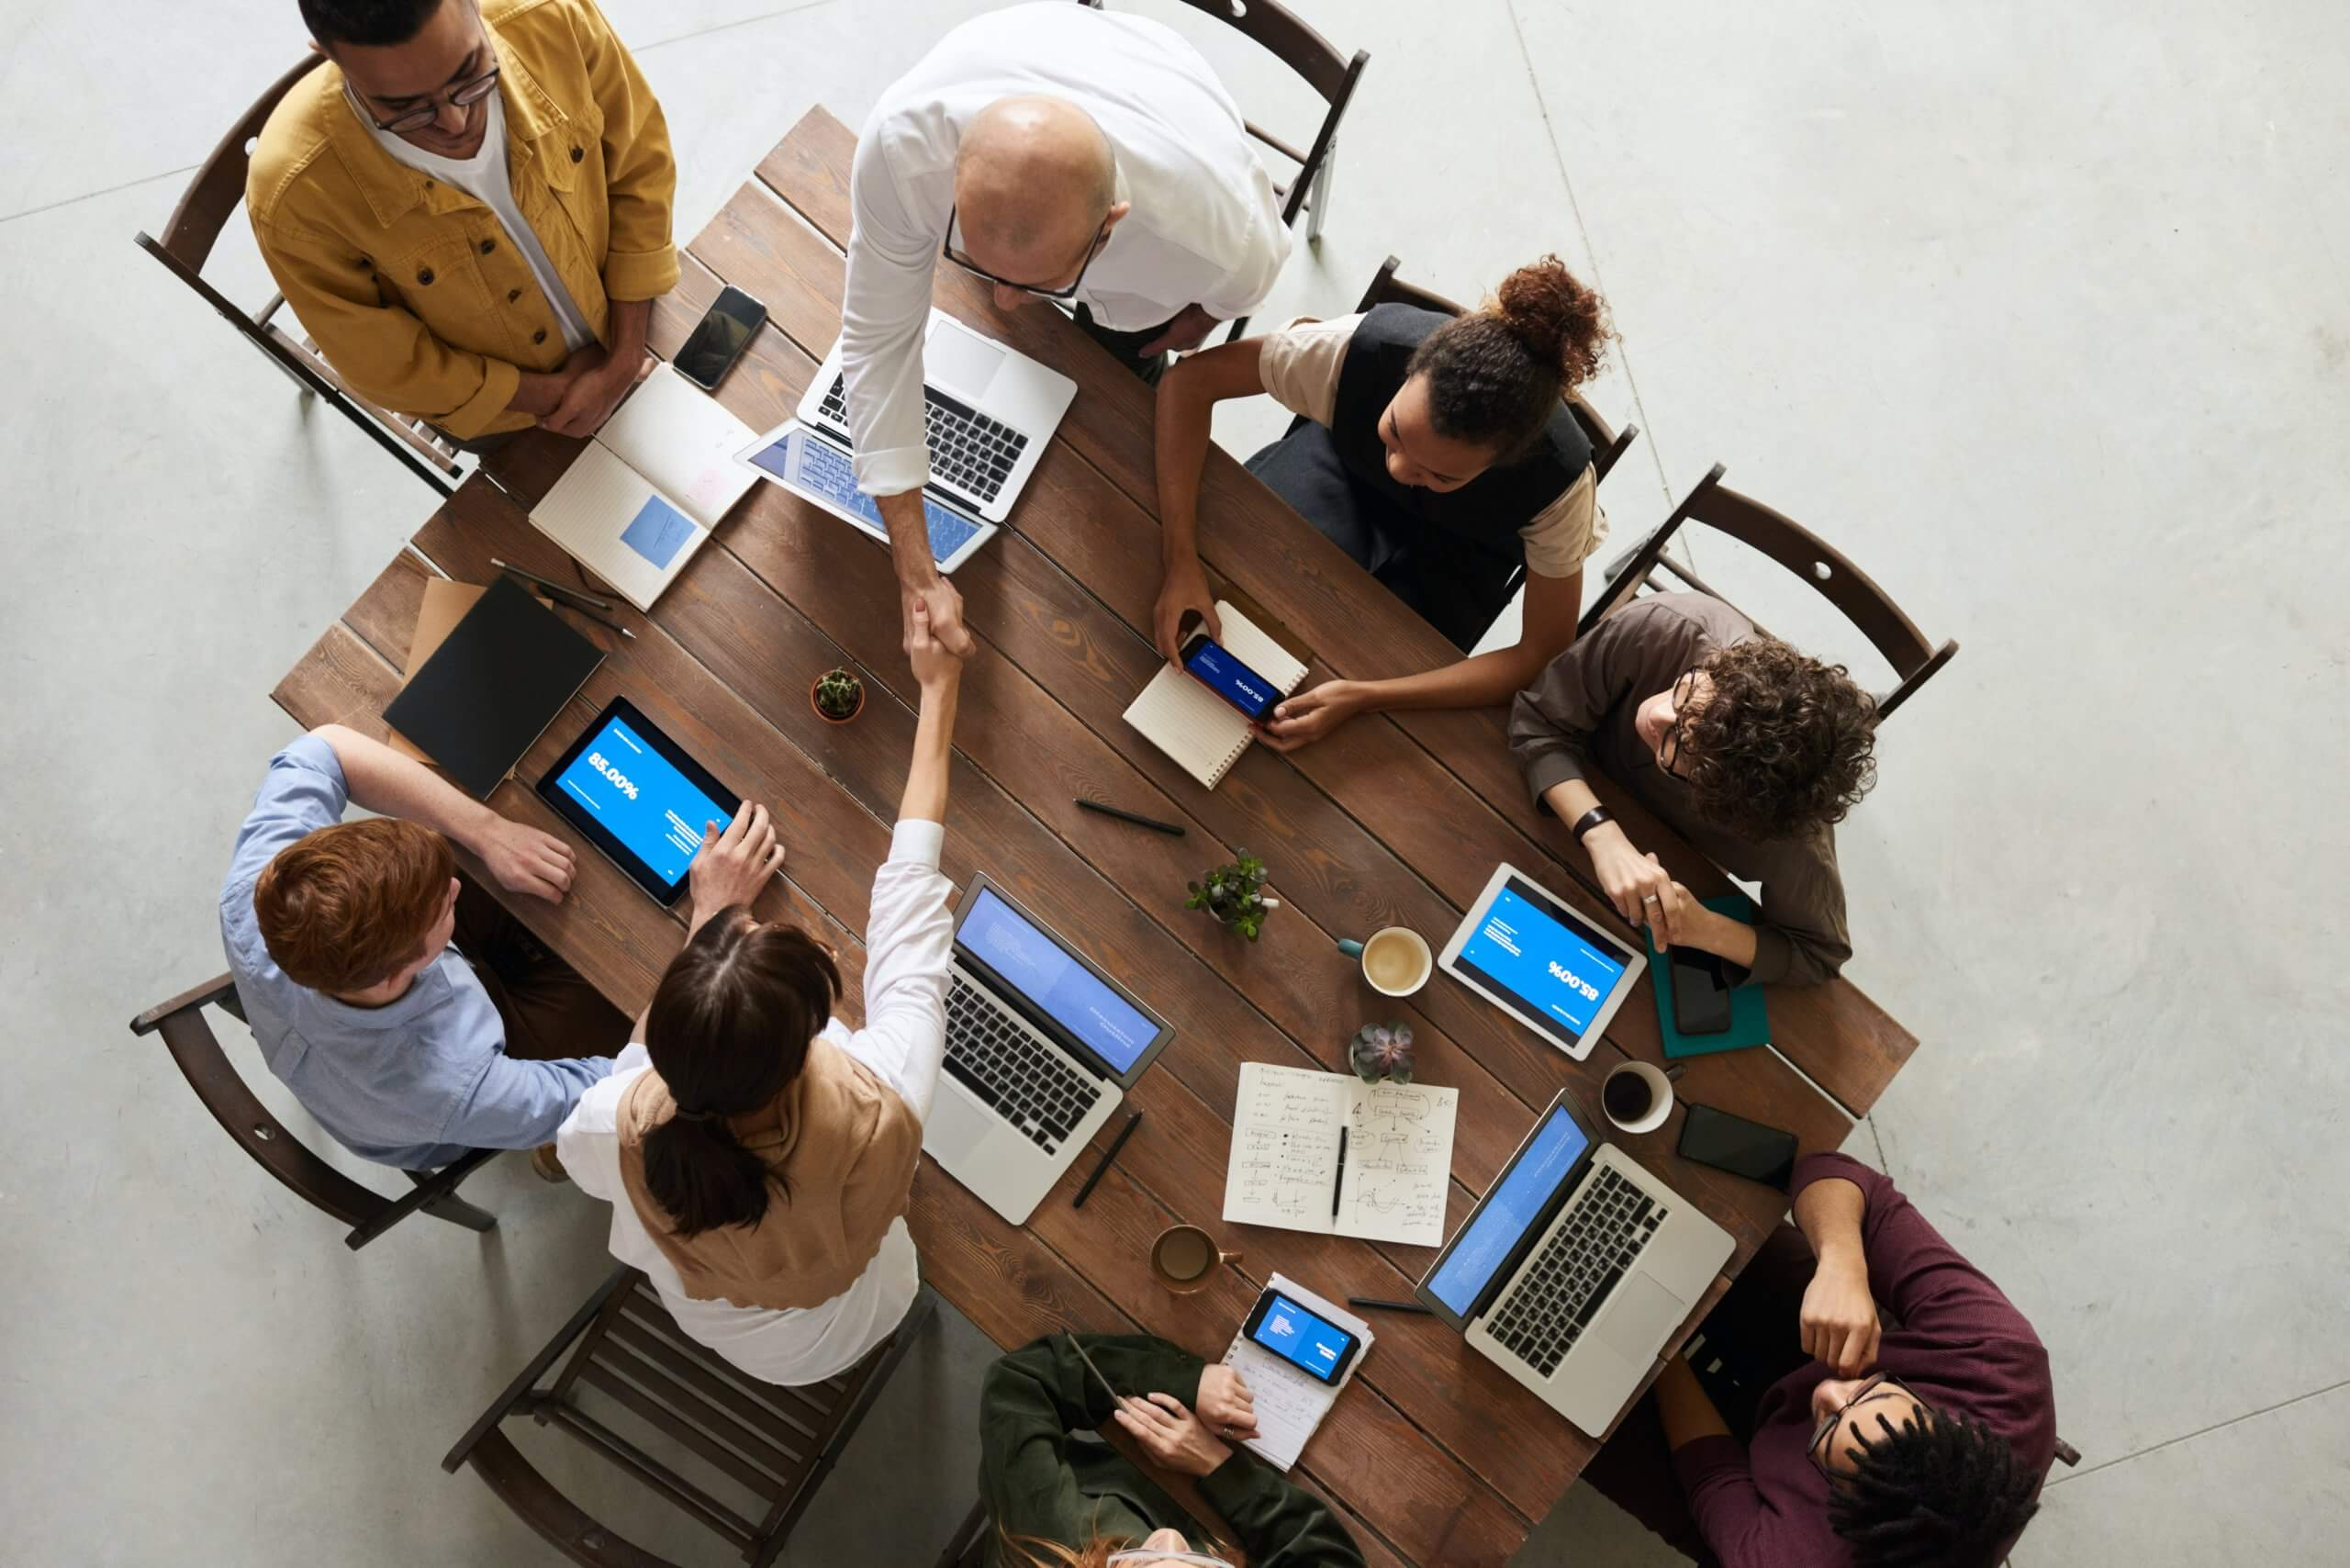 Meeting at appropriate intervals is a key way that small business owners can grow faster in 2021.